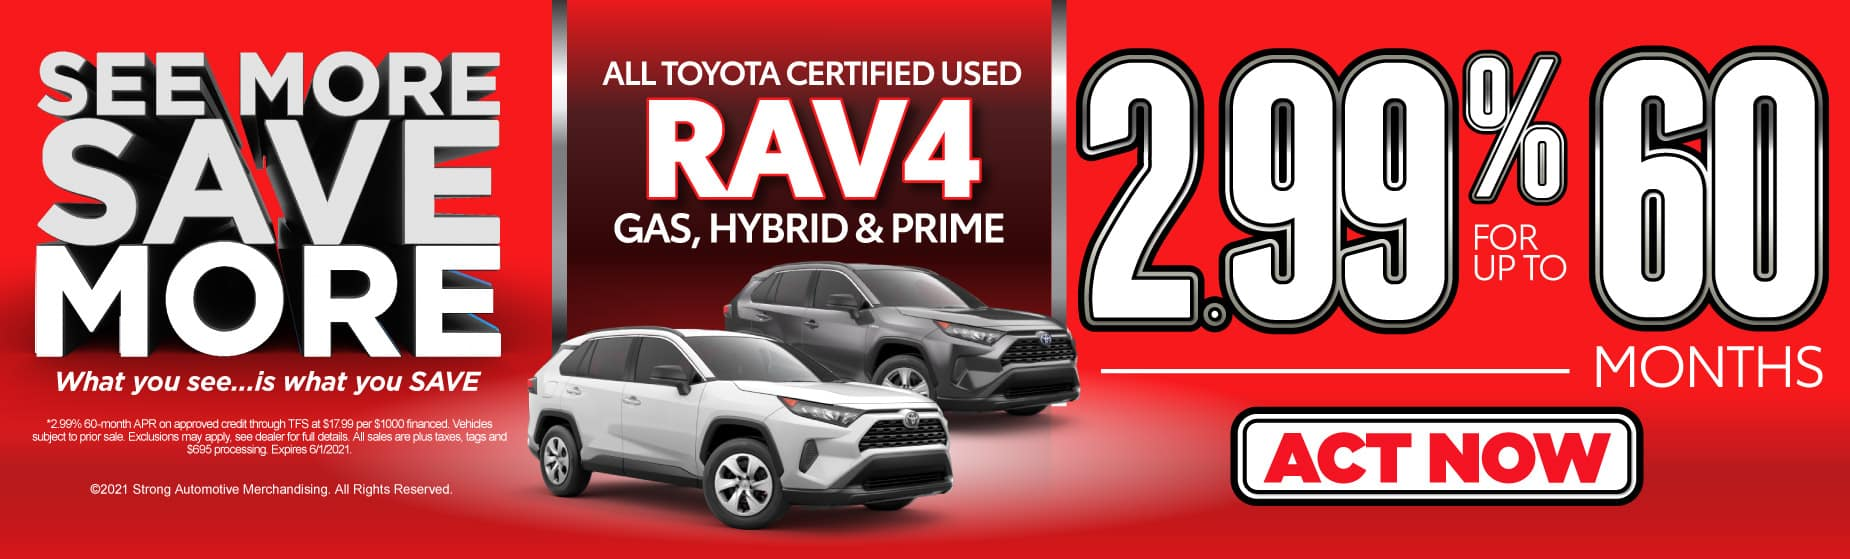 Used RAV4 | 2.99% for up to 60 months | Act Now